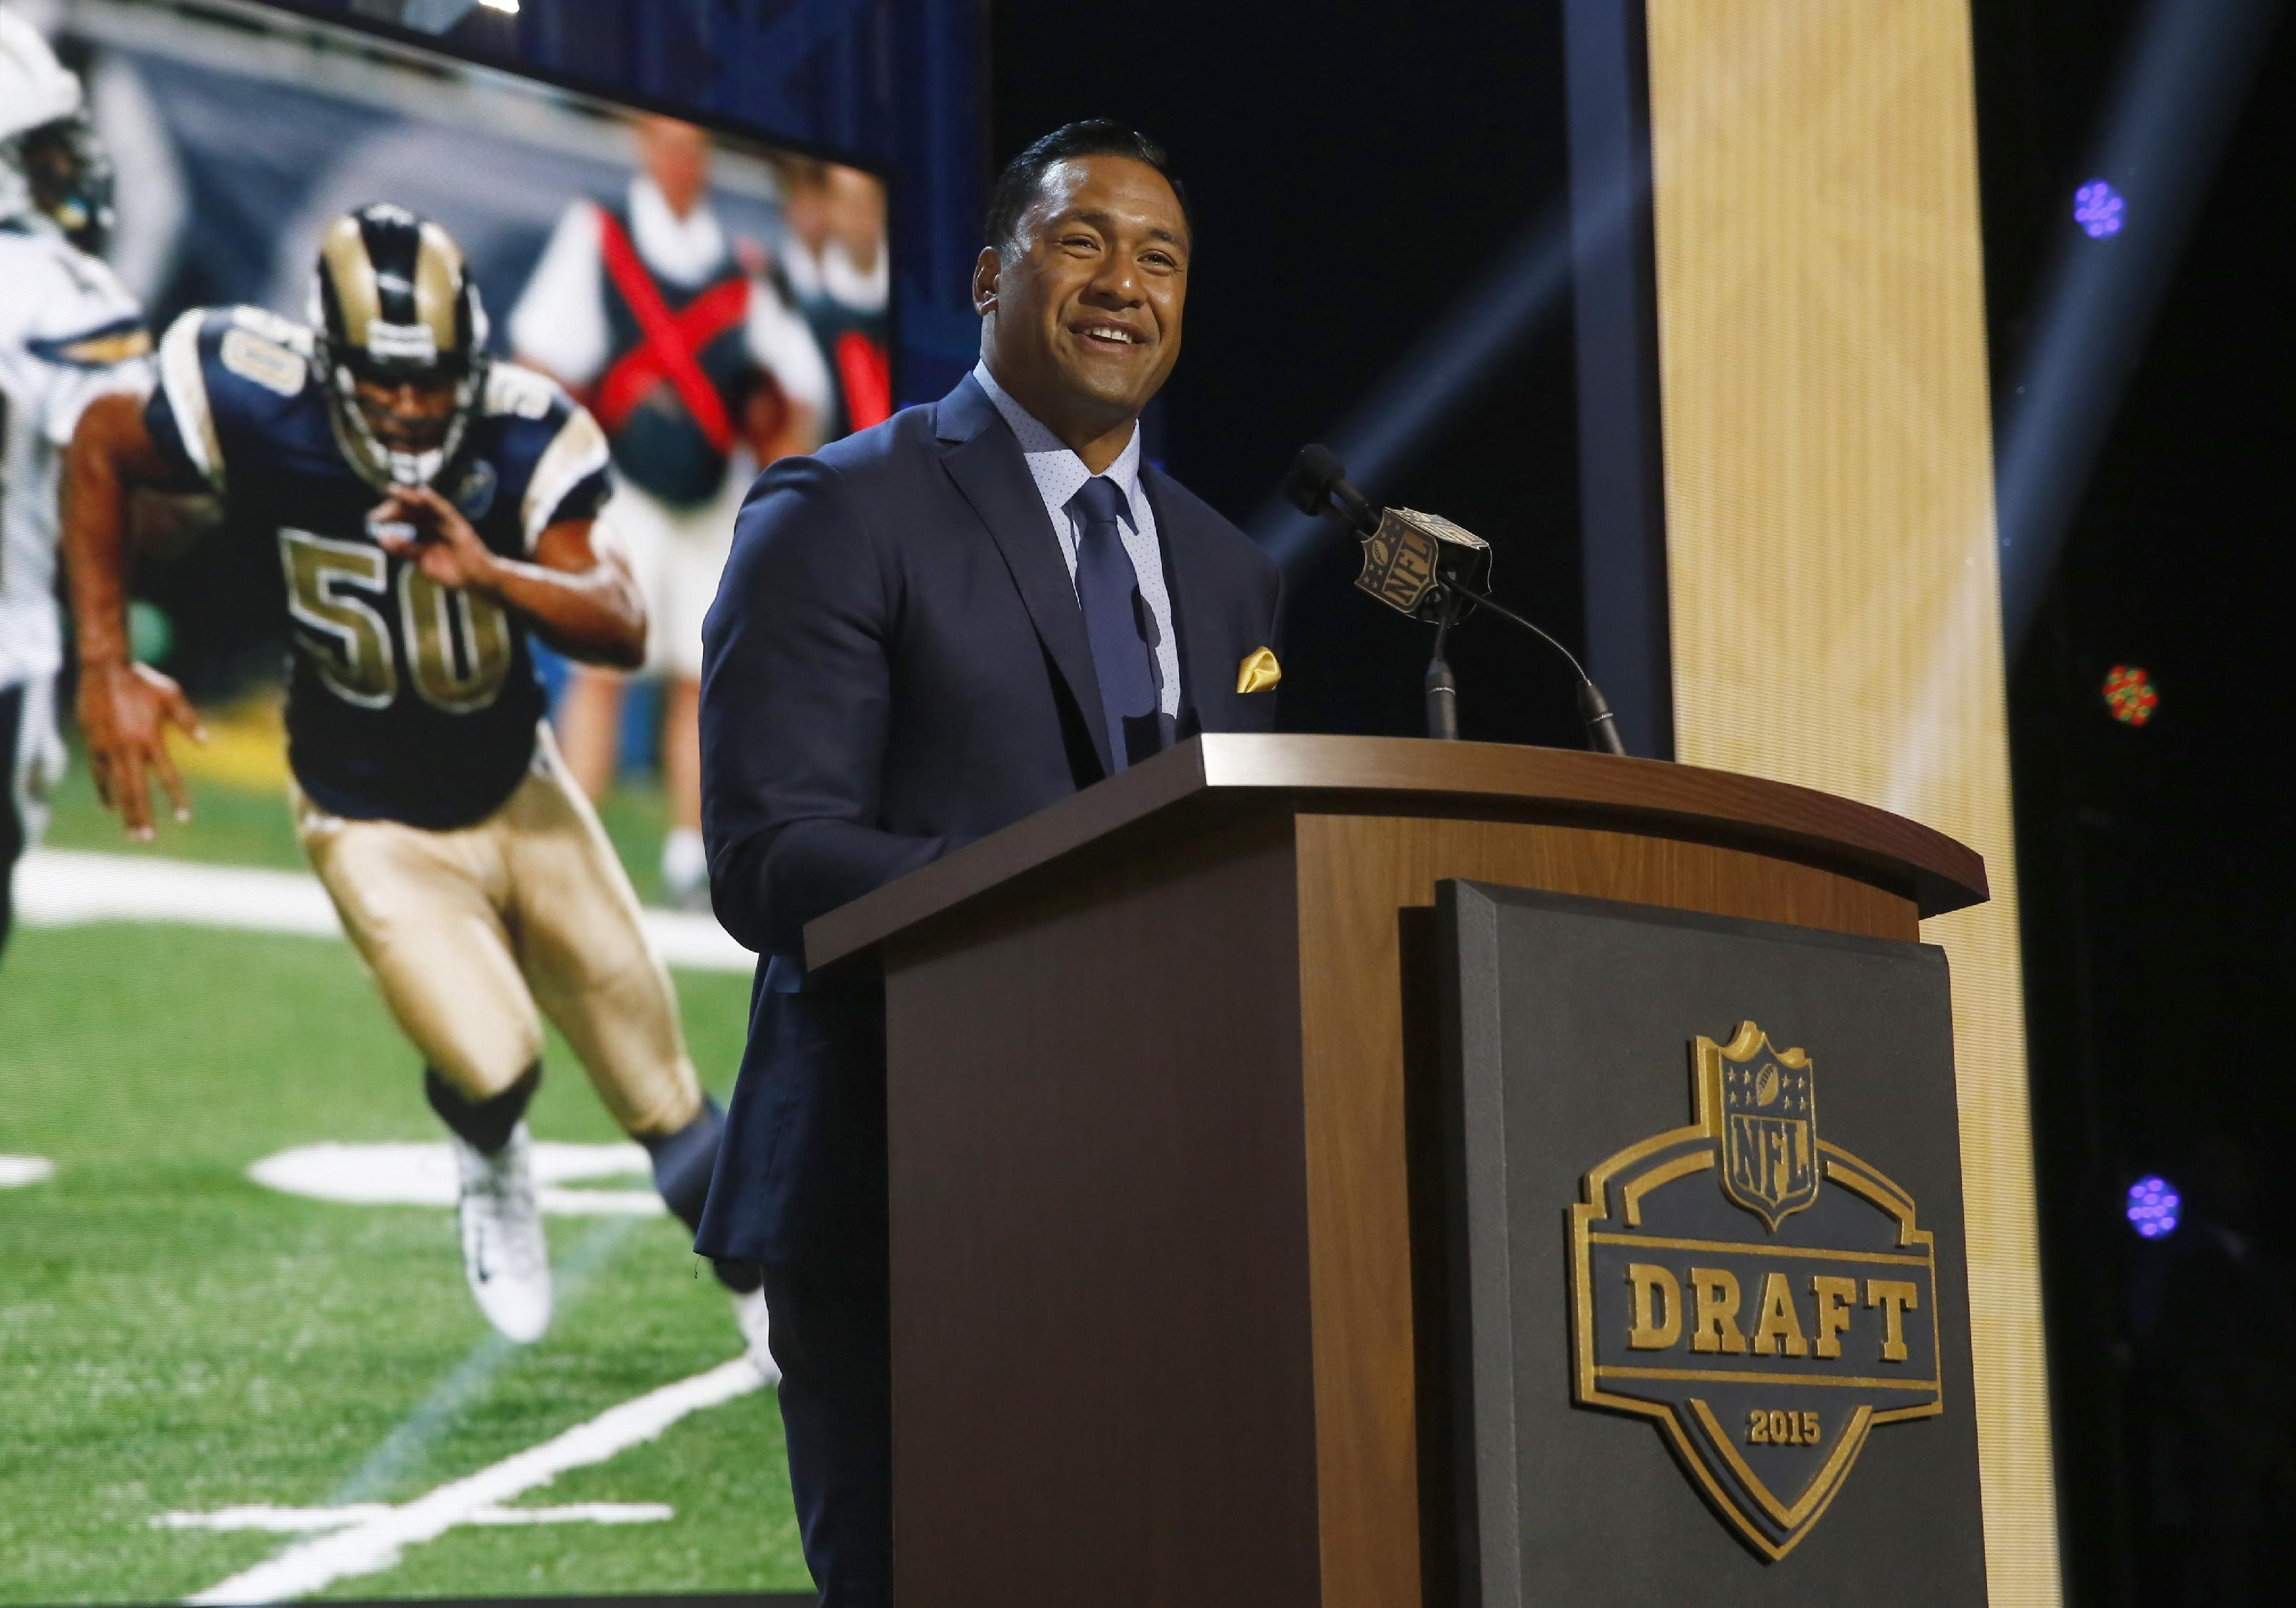 Rams lean heavily on offense with 7 of 9 picks in draft